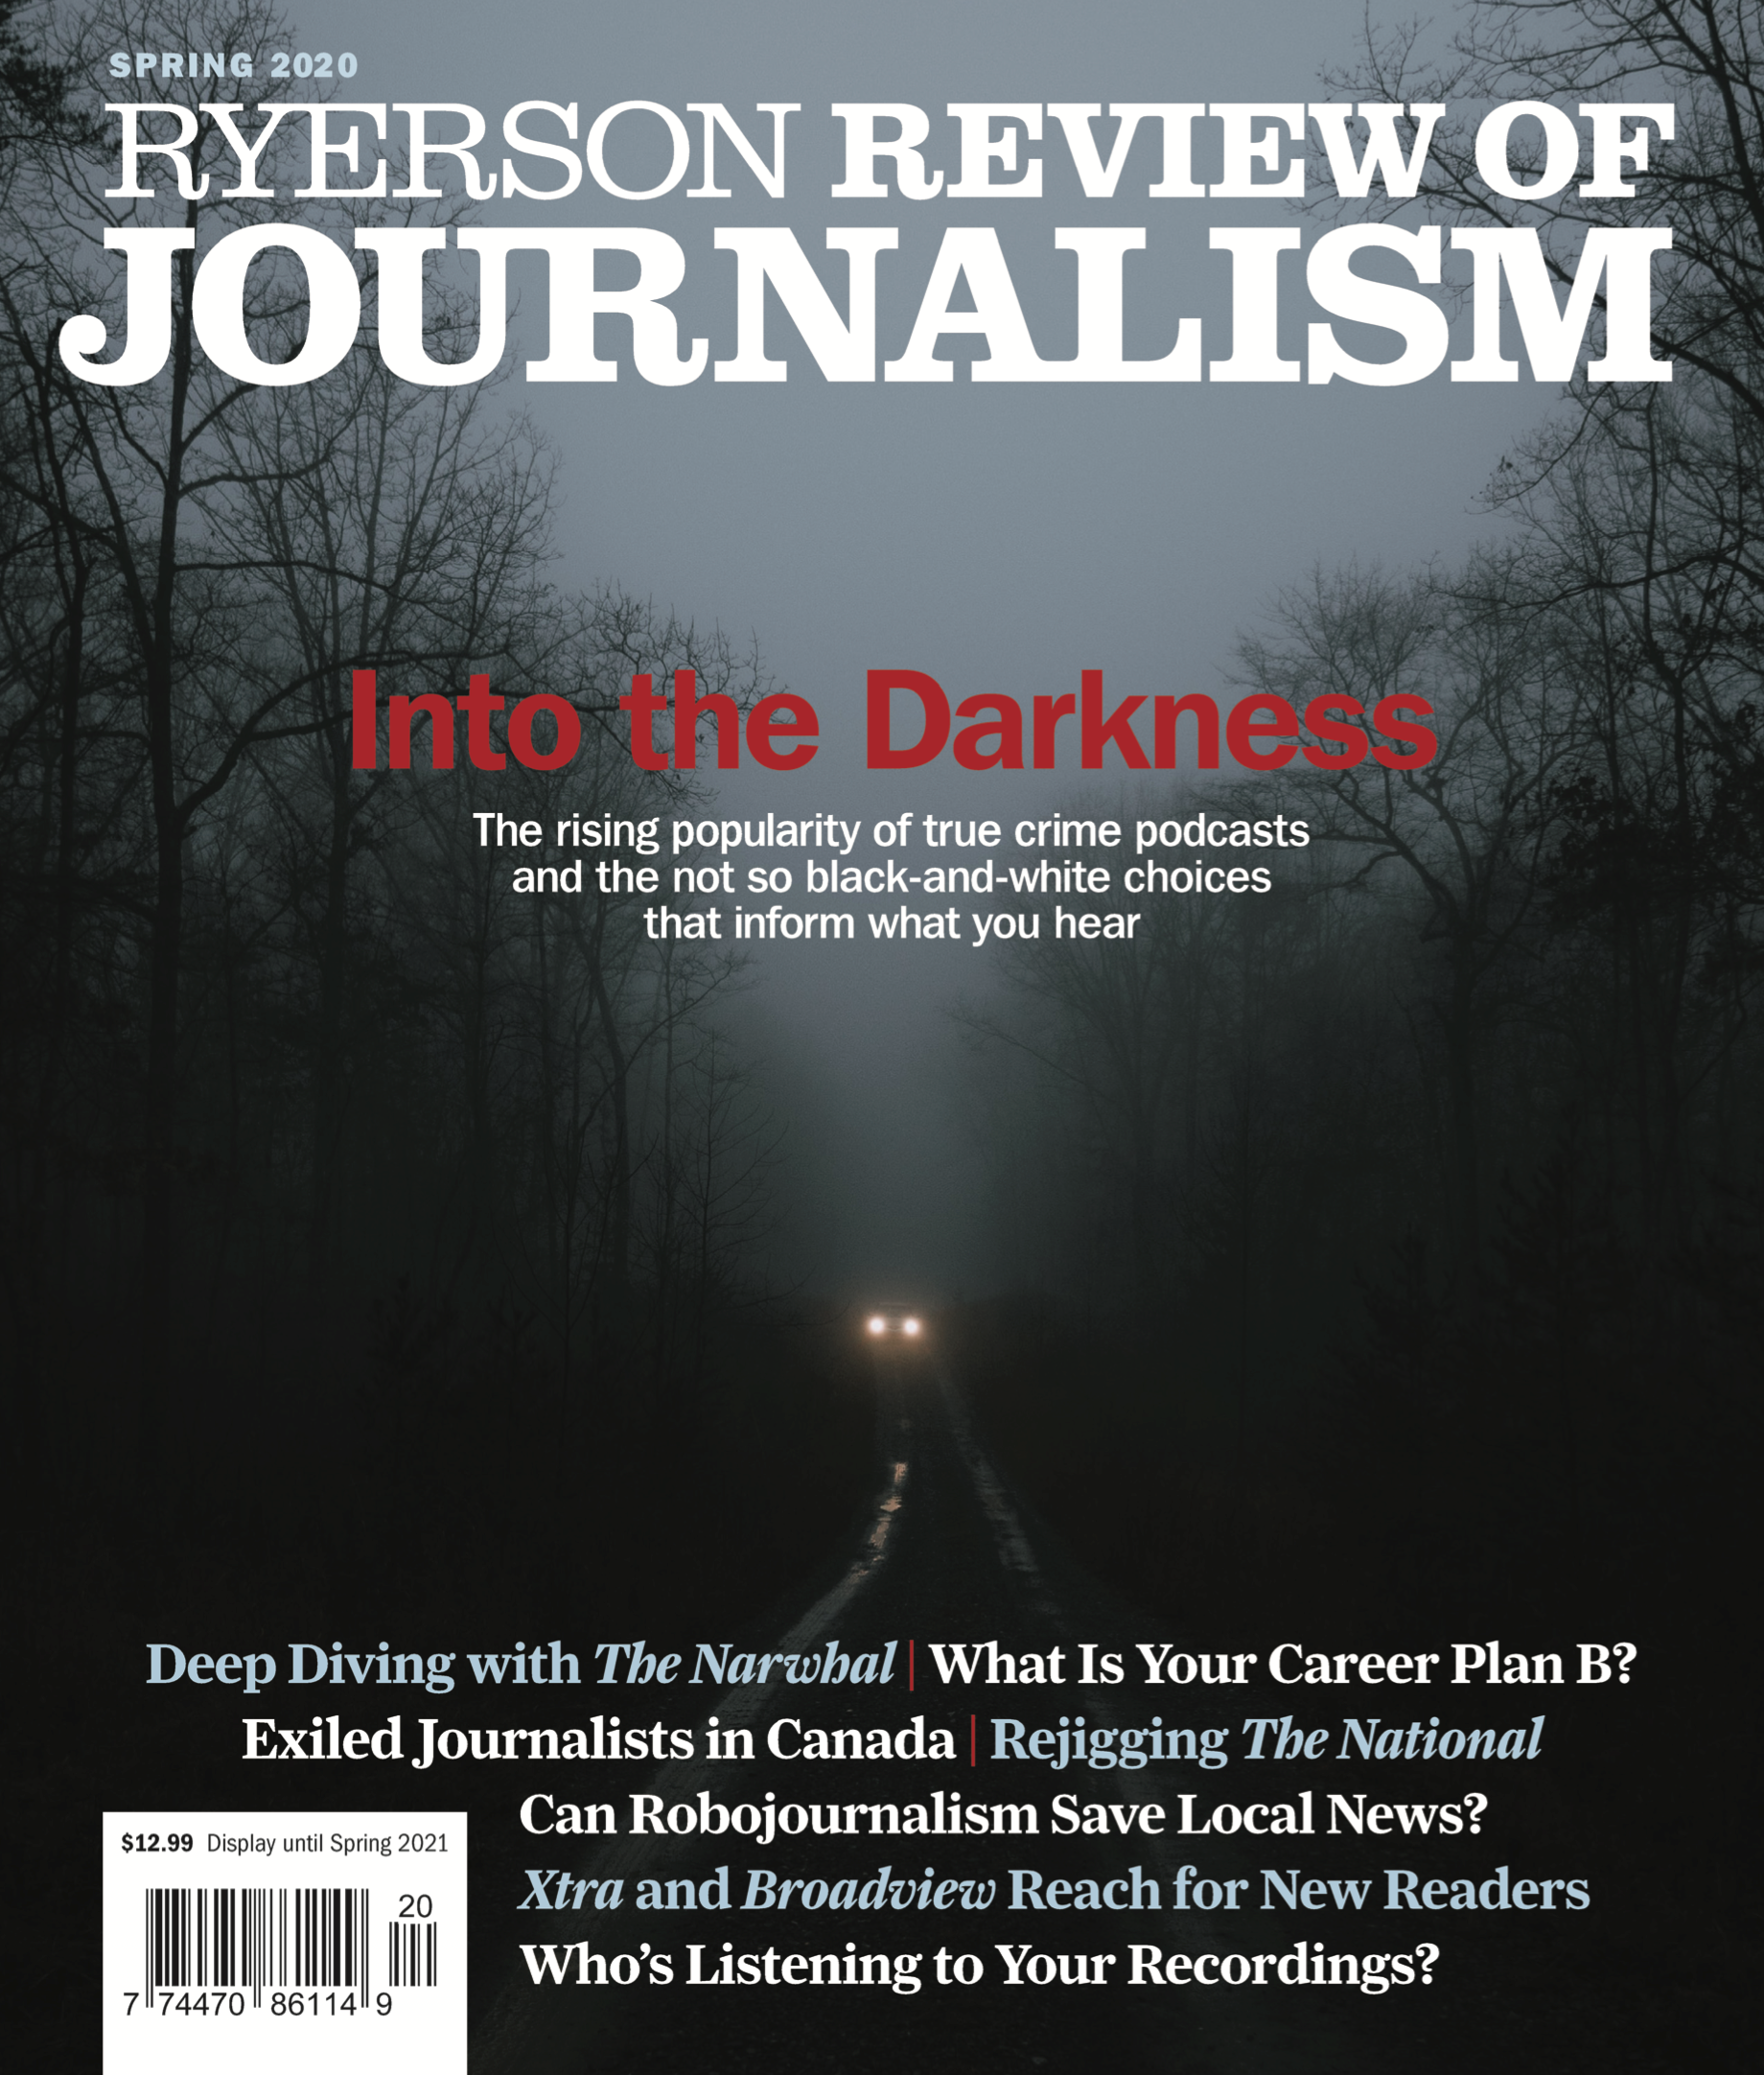 Ryerson Review of Journalism Spring 2020 magazine cover